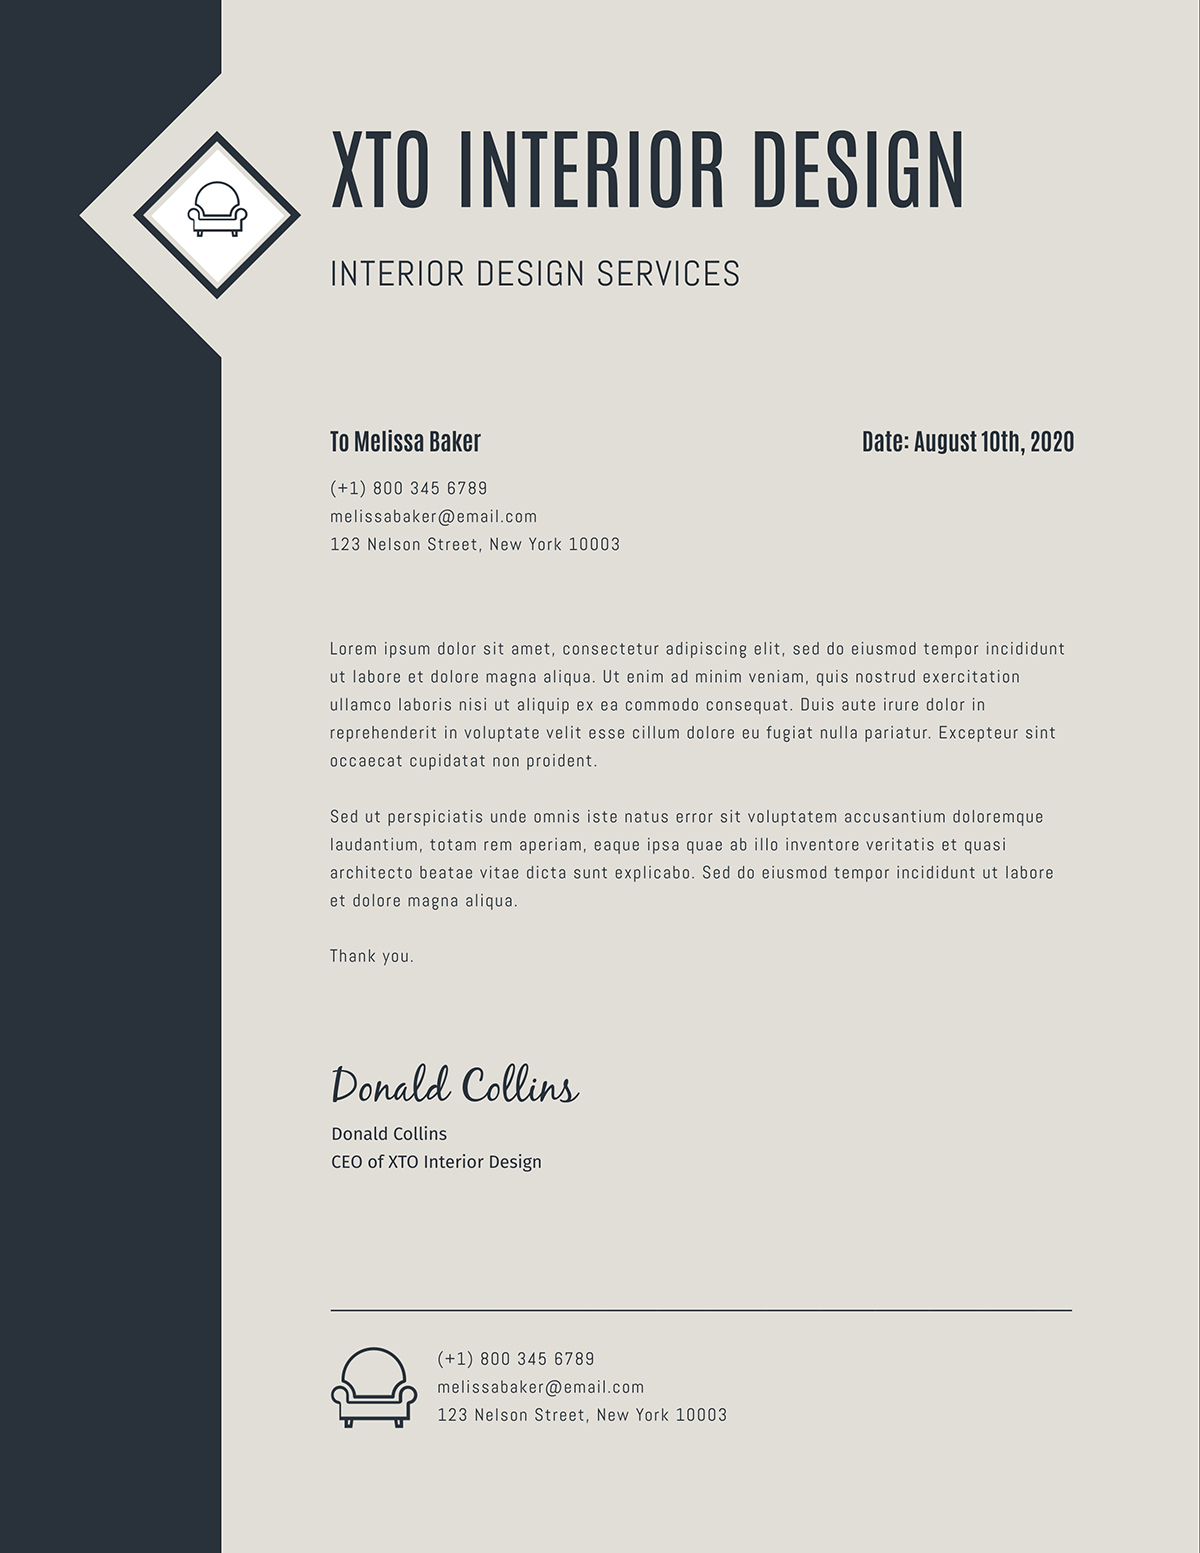 Black and grey business letter template available on Visme.